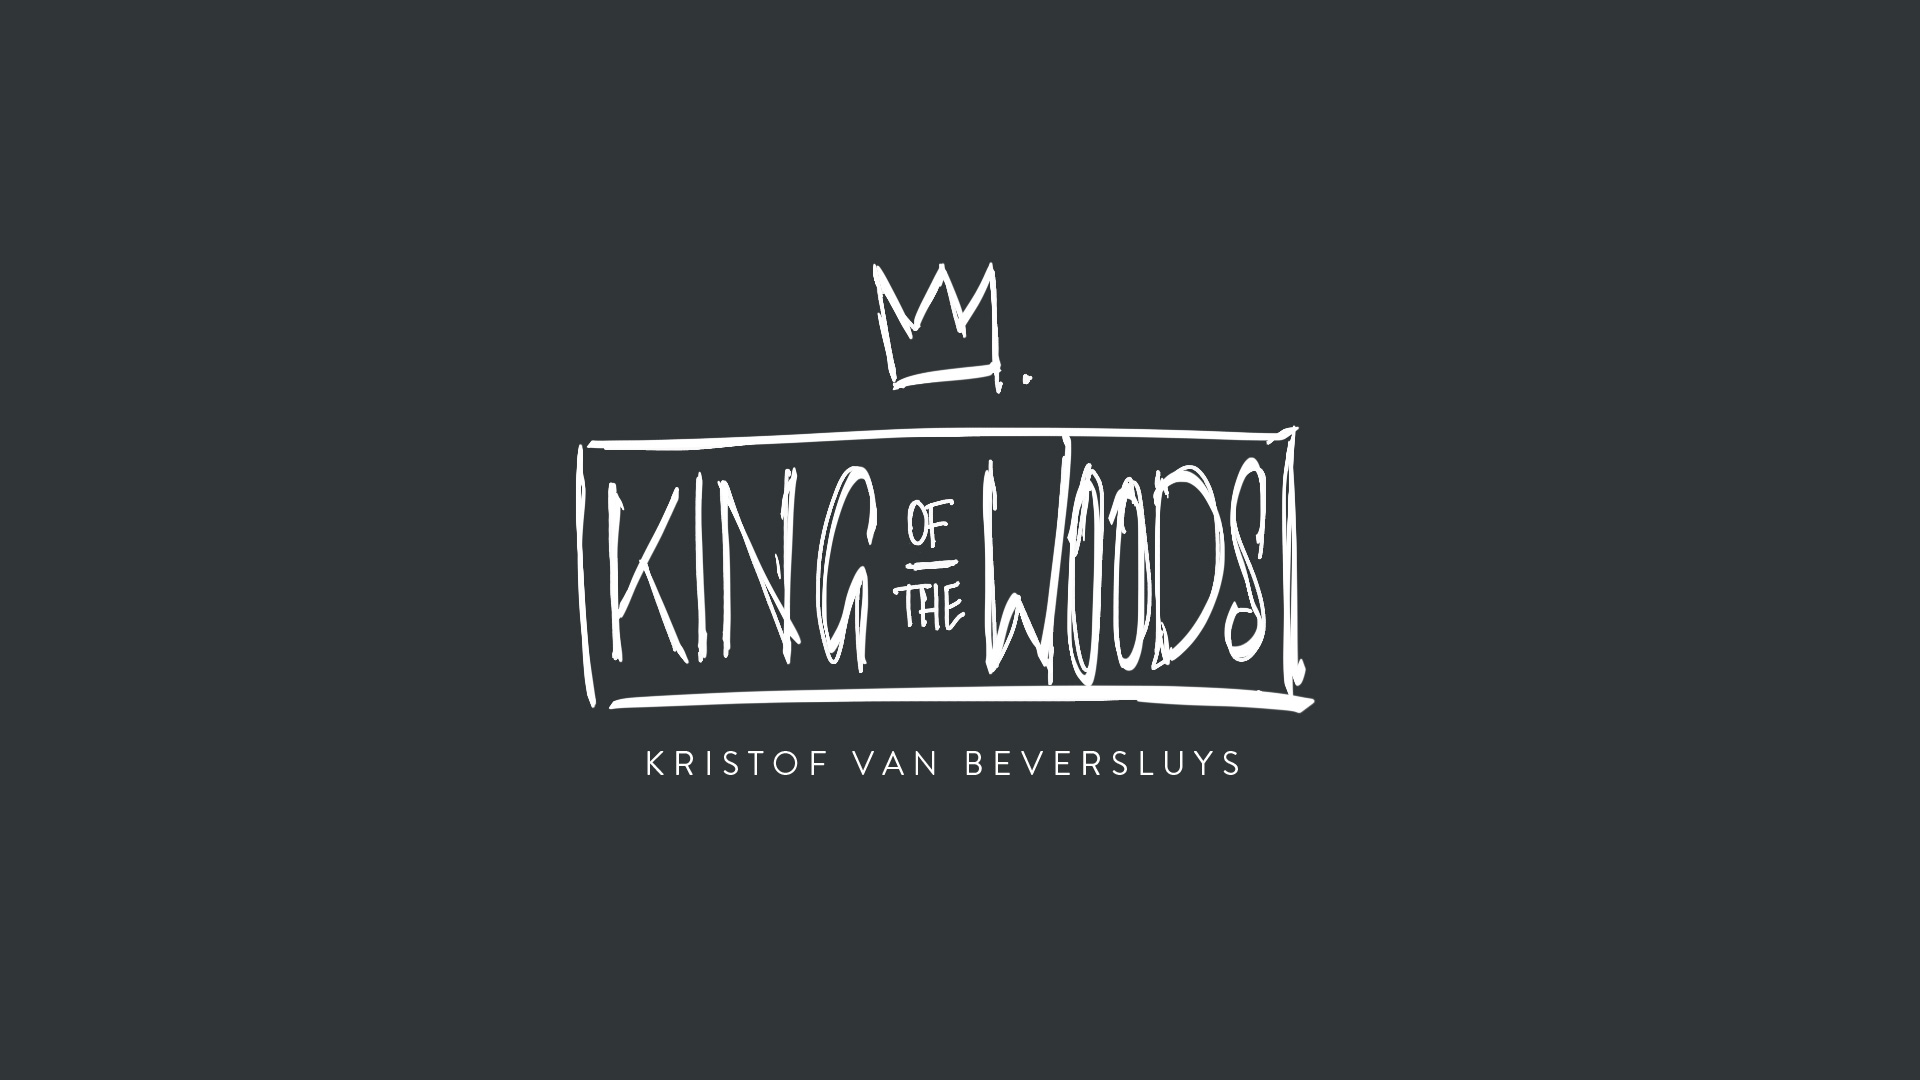 kingofthewoods-big-01-01